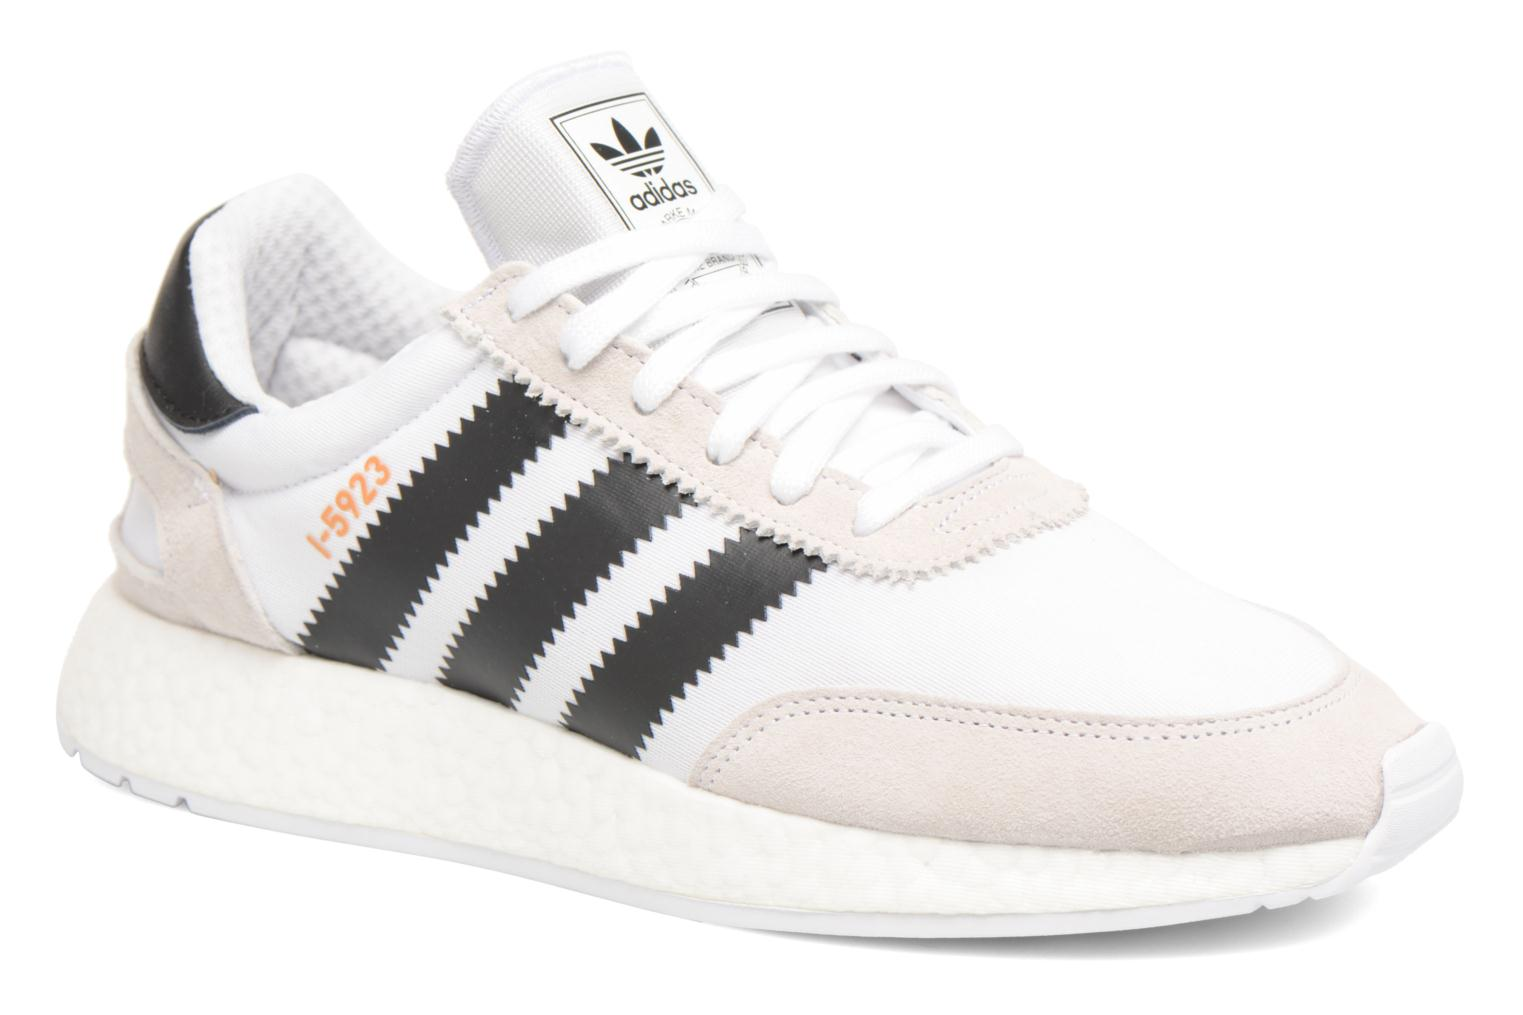 Marques Chaussure homme Adidas Originals homme I-5923 M VerbasFtwblaGomme3